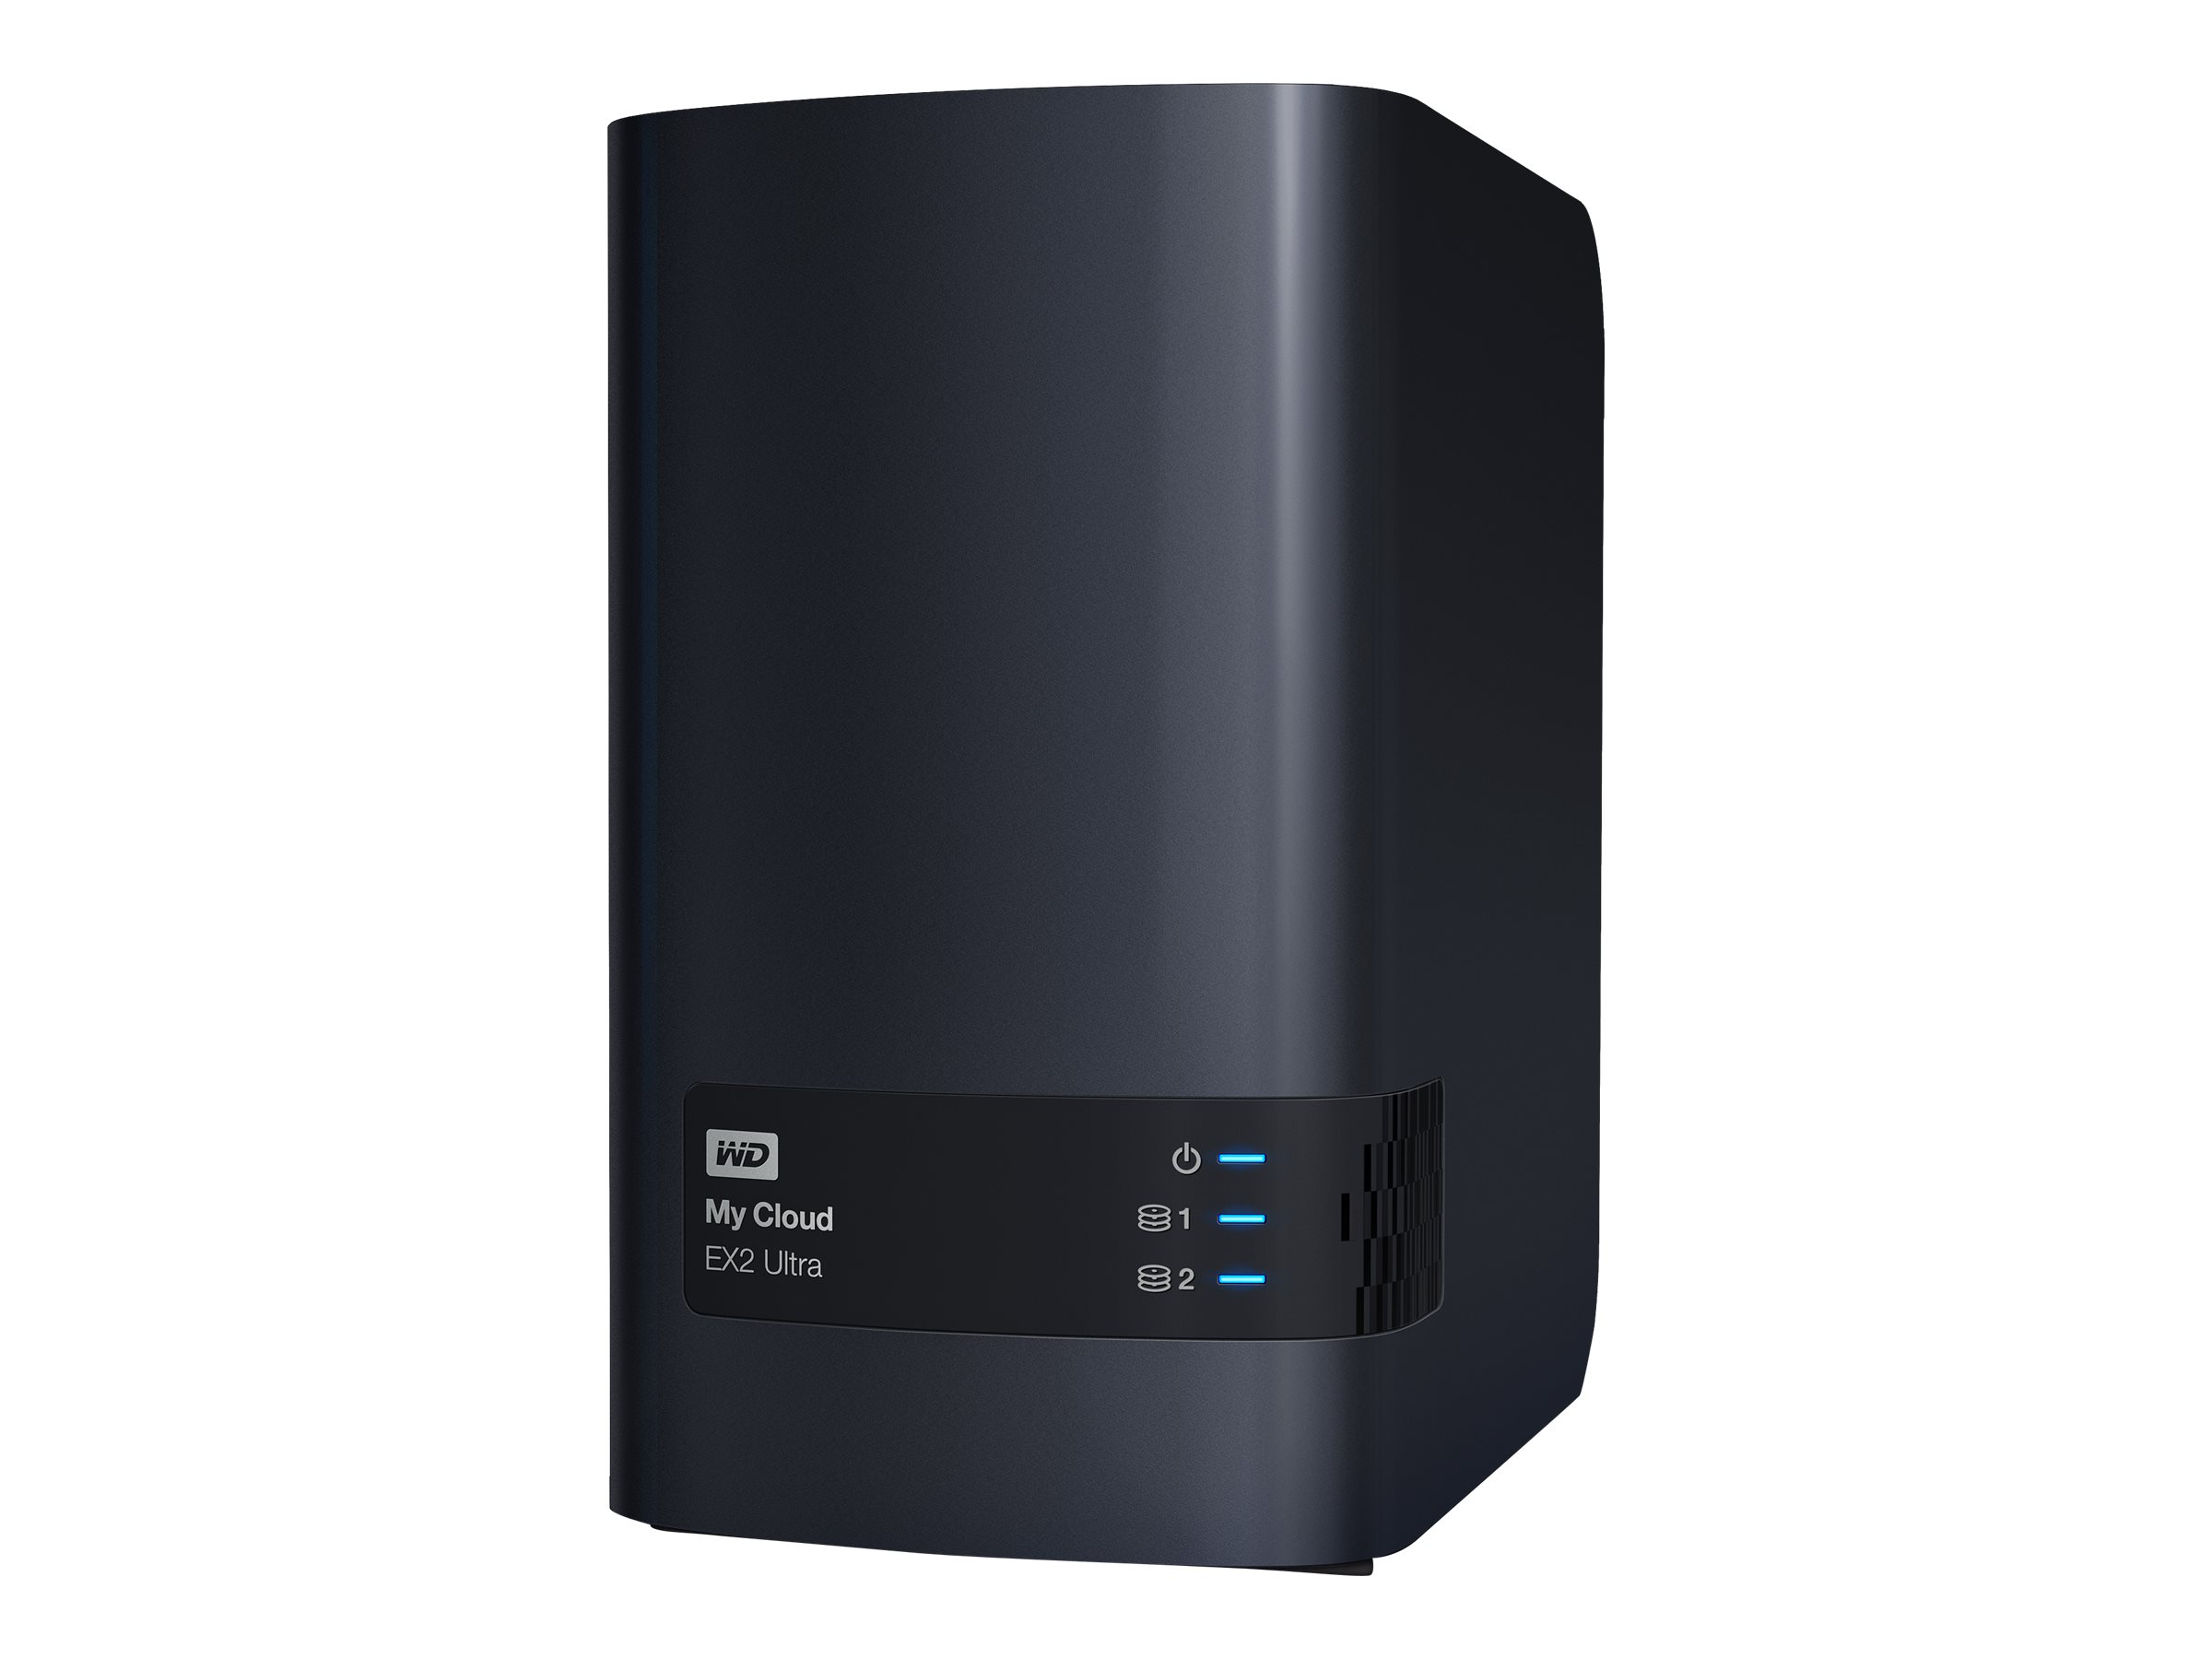 WD My Cloud EX2 Ultra WDBVBZ0000NCH - personal cloud storage device - 0 GB